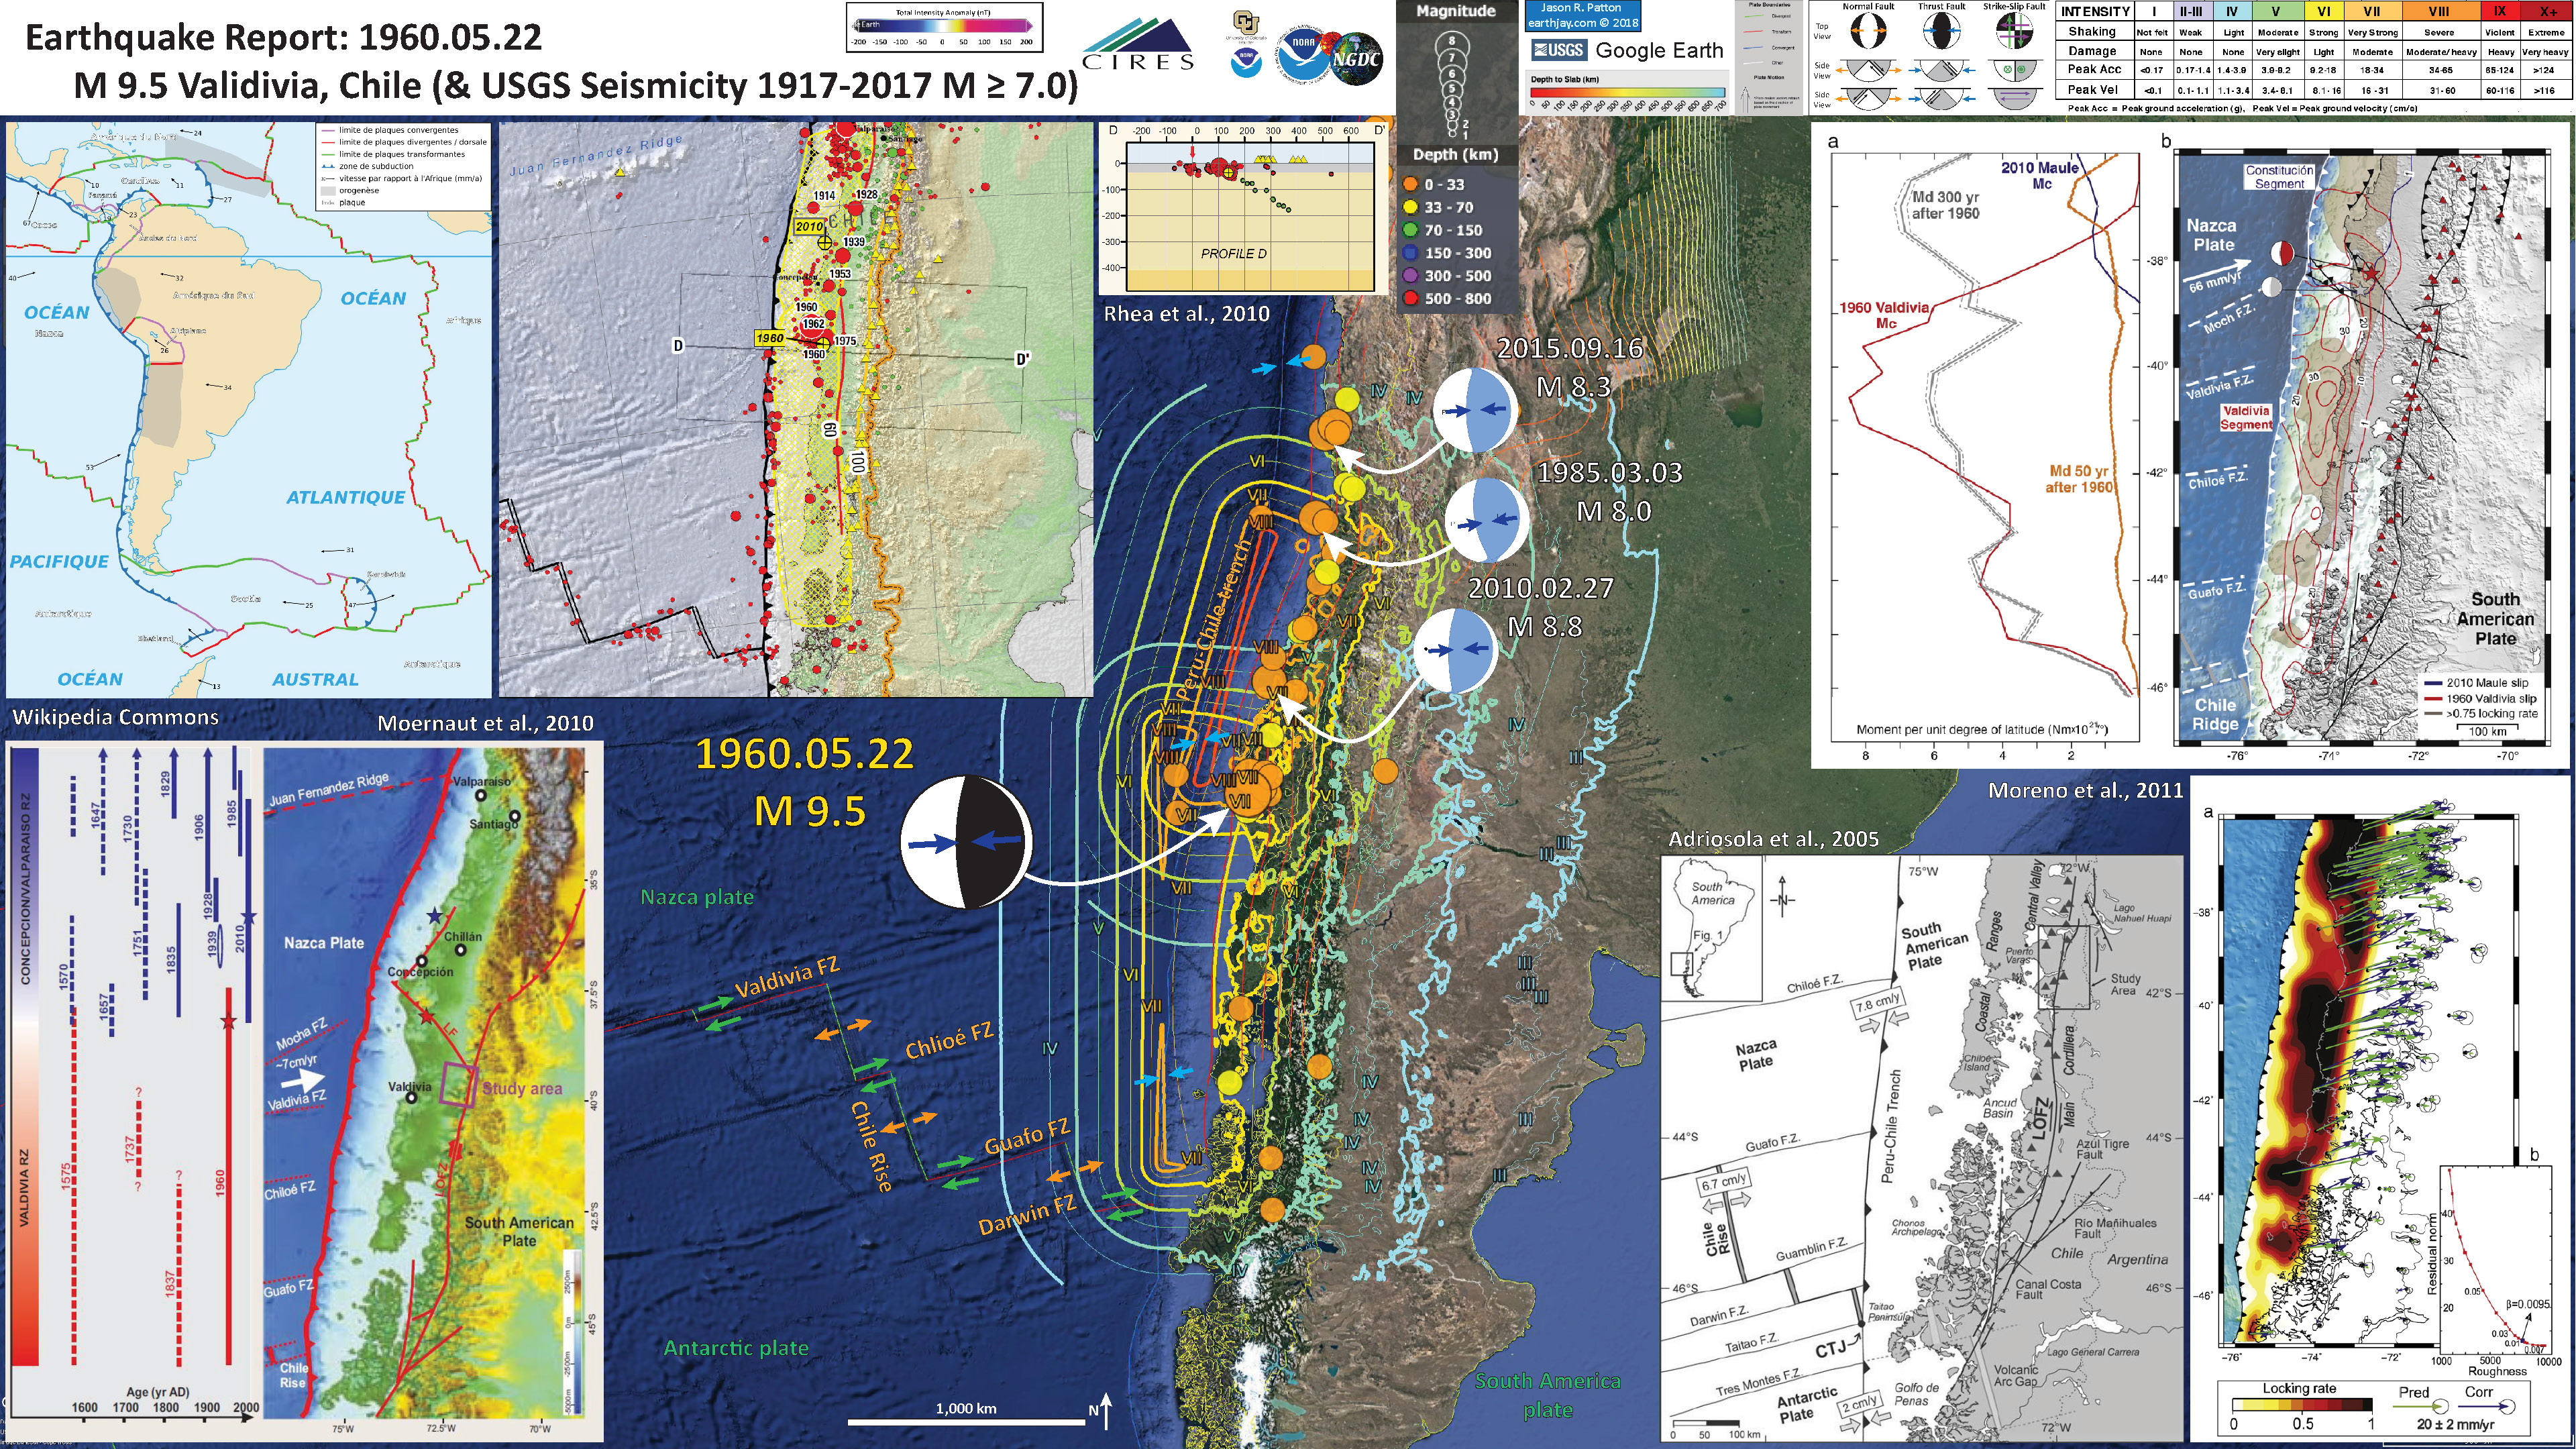 Why earthquakes occur frequently in Chile 15